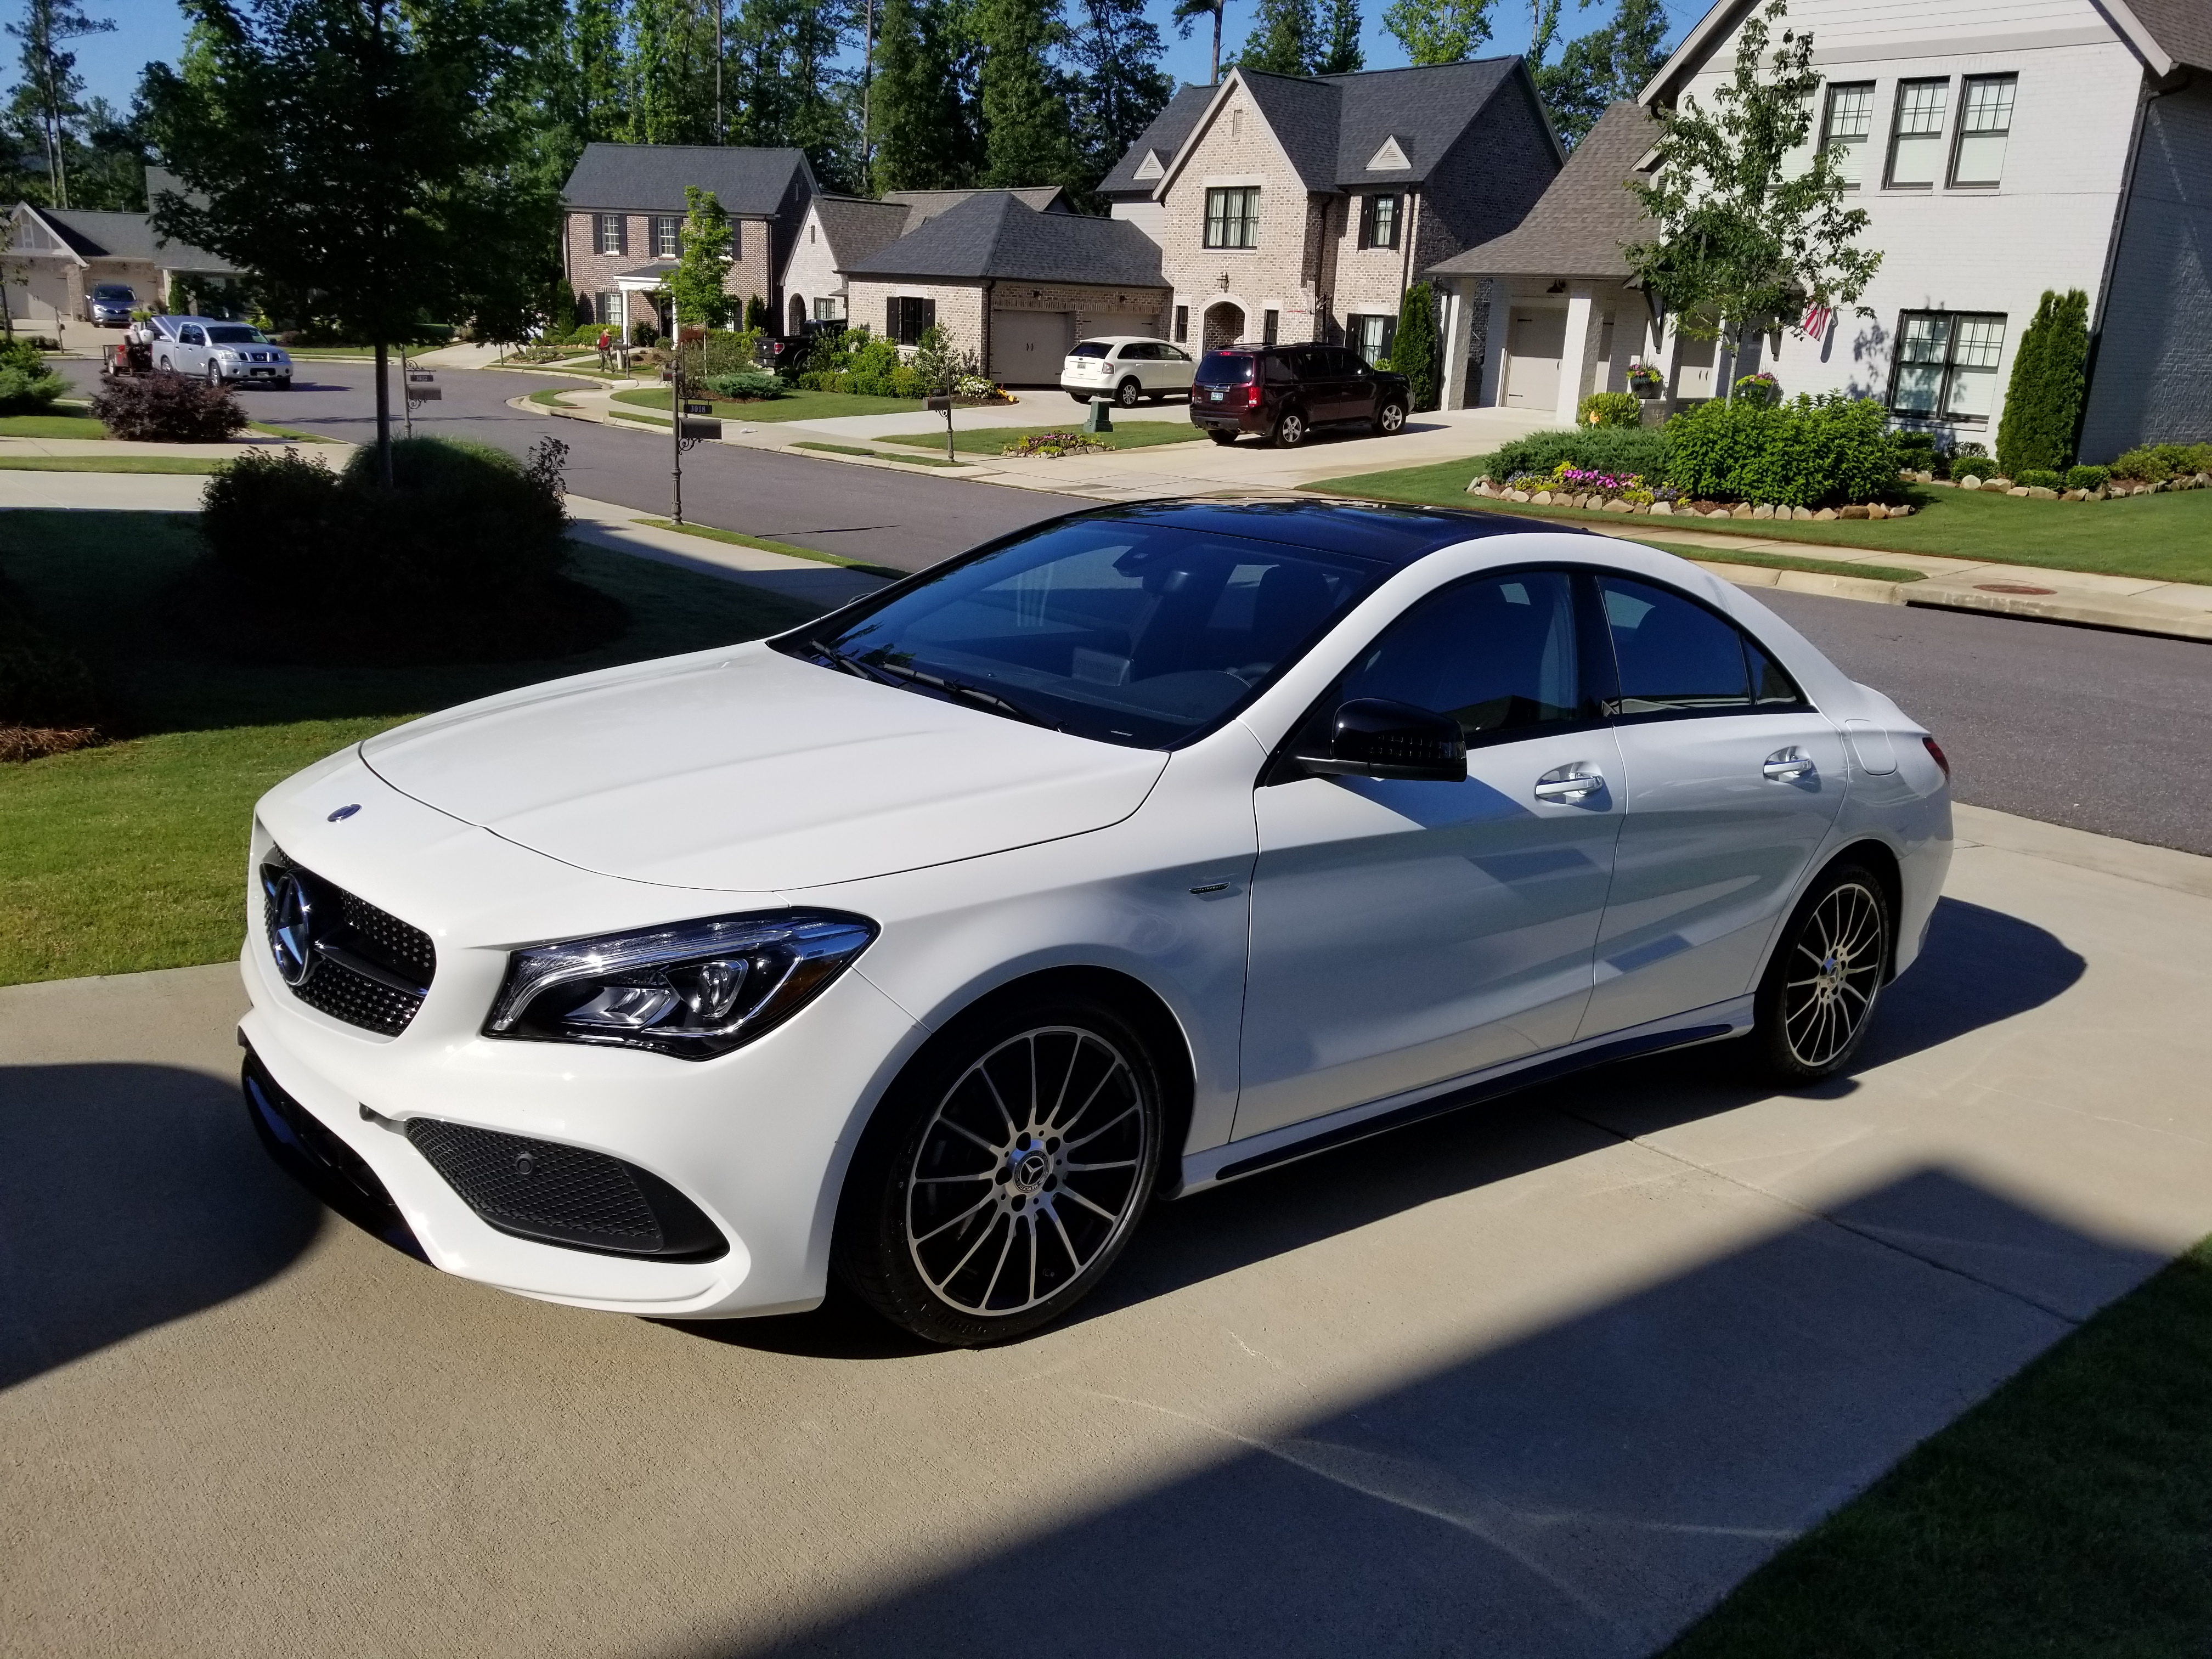 2018 Cla 250 Ice Edition Limited Edition 1 Of 400